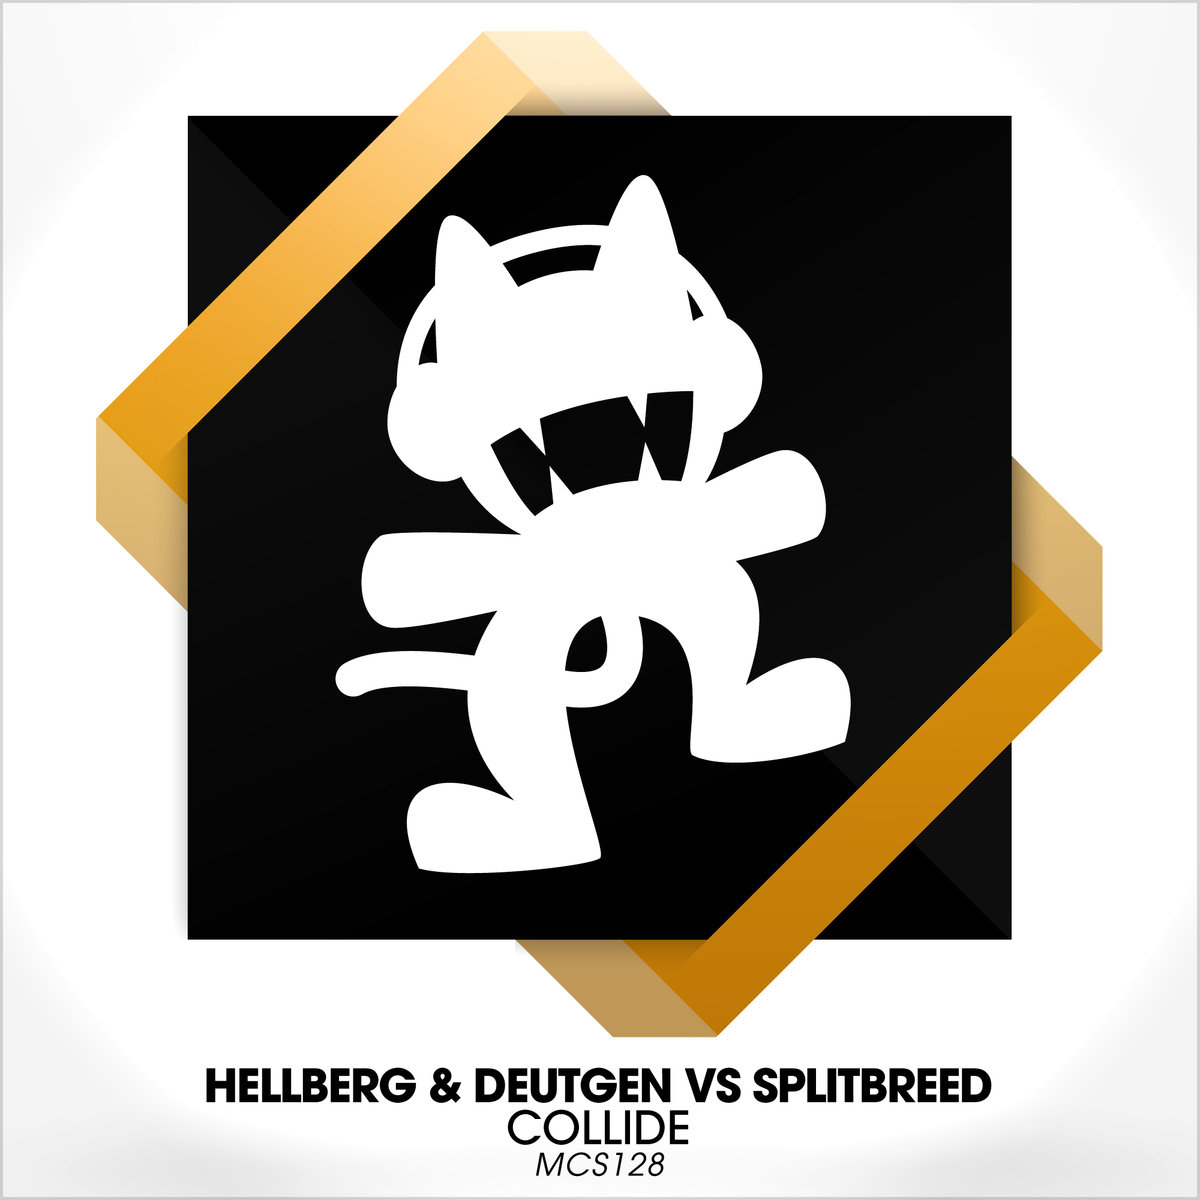 Collide (Hellberg & Deutgen)